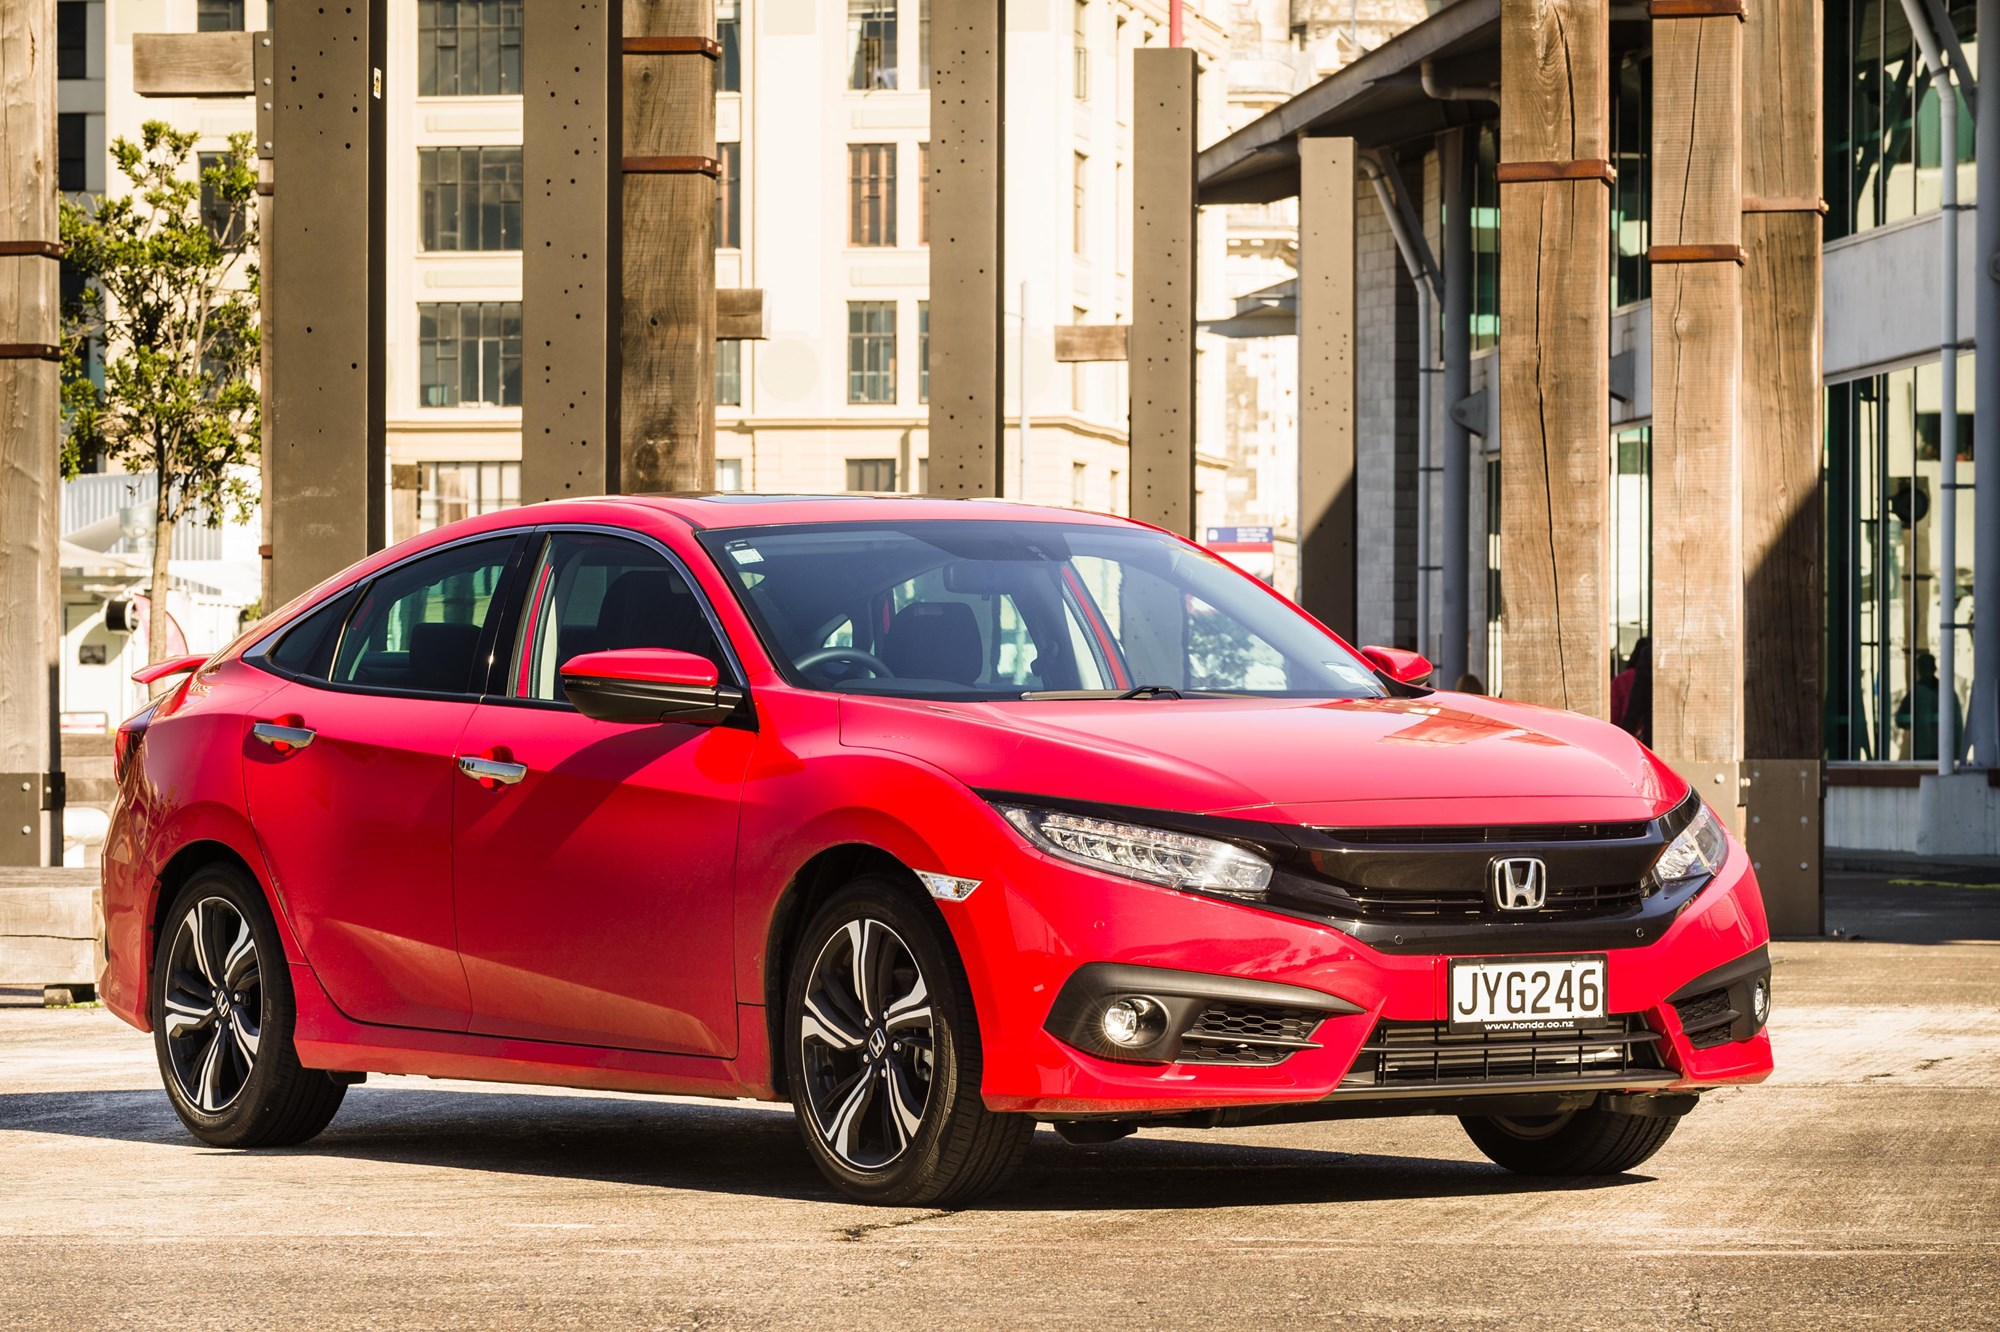 2016 Honda Civic RS is an Attraction | Autoxpat